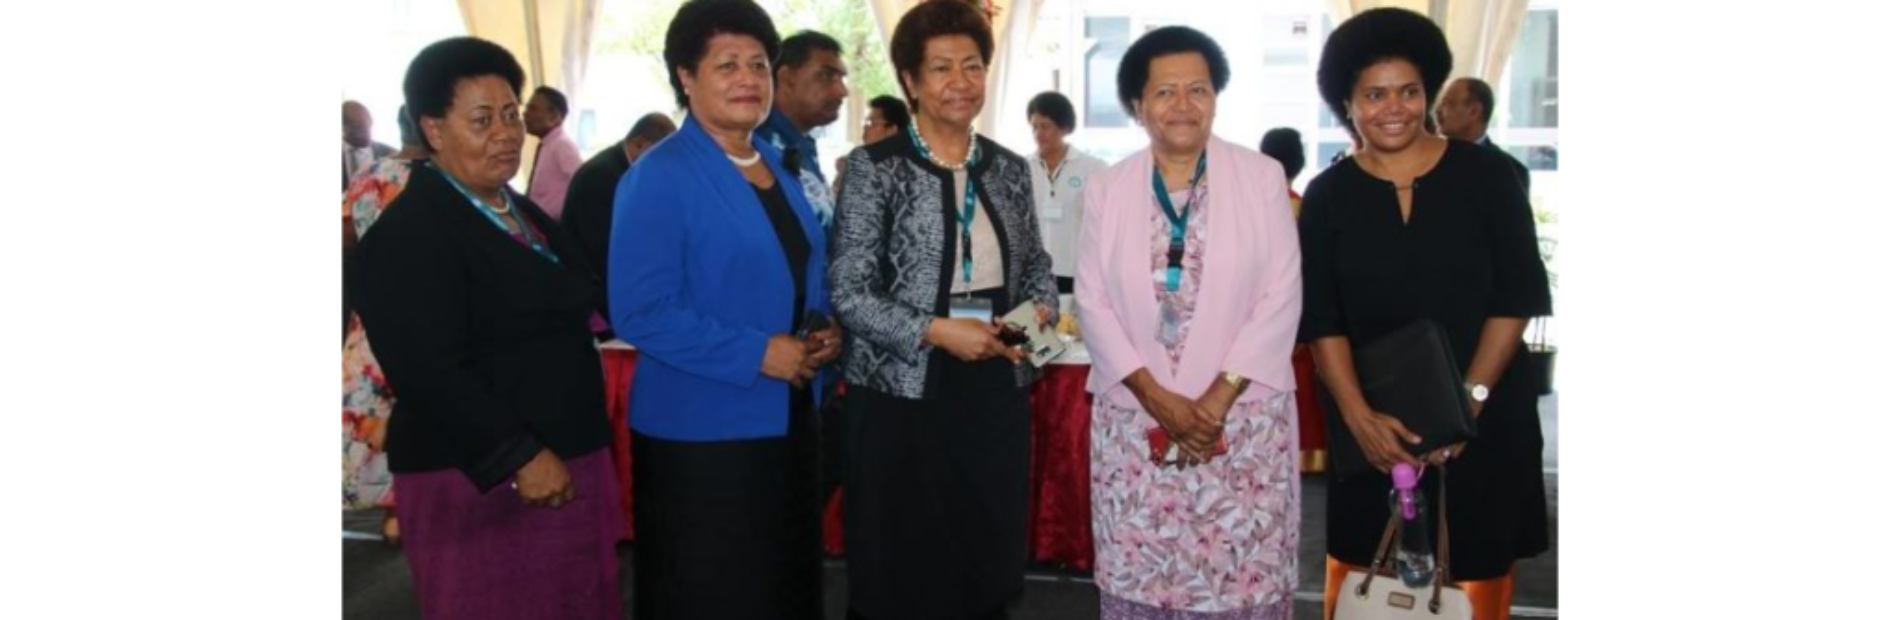 Fiji women MPs 2018